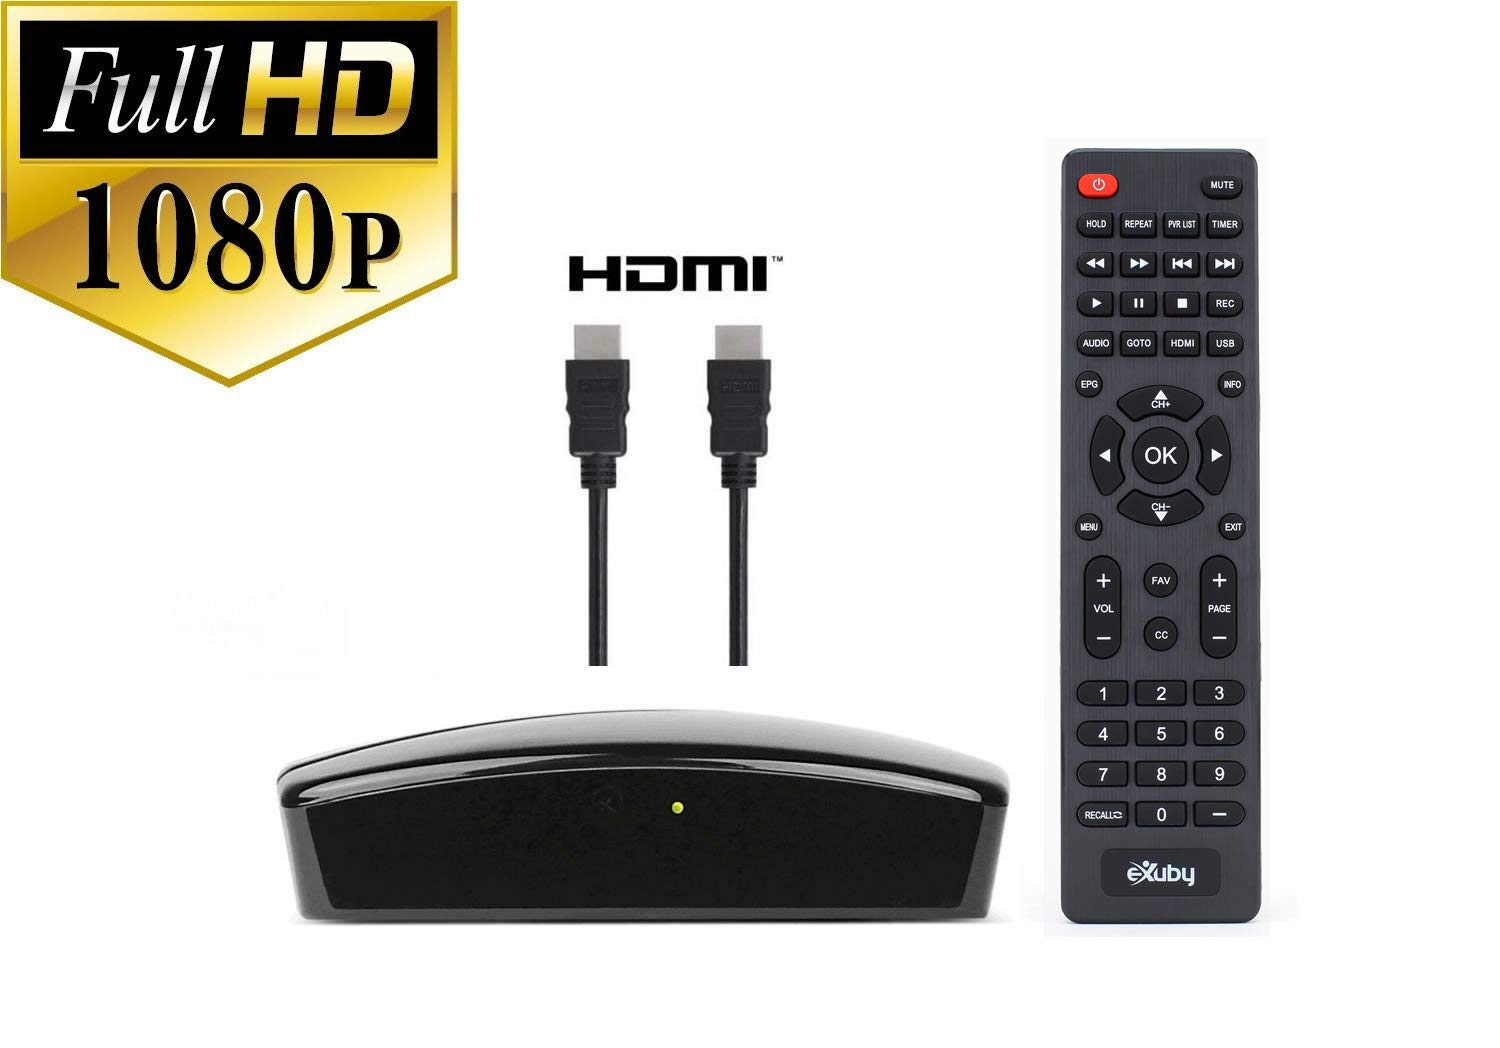 Digital TV Tuner for Viewing and Recording HD Digital Channels for Free (Instant or Scheduled Recording, 1080P HDTV, High Resolution, HDMI Output, 7 Day Program Guide) with HDMI and RCA Cable by eXuby